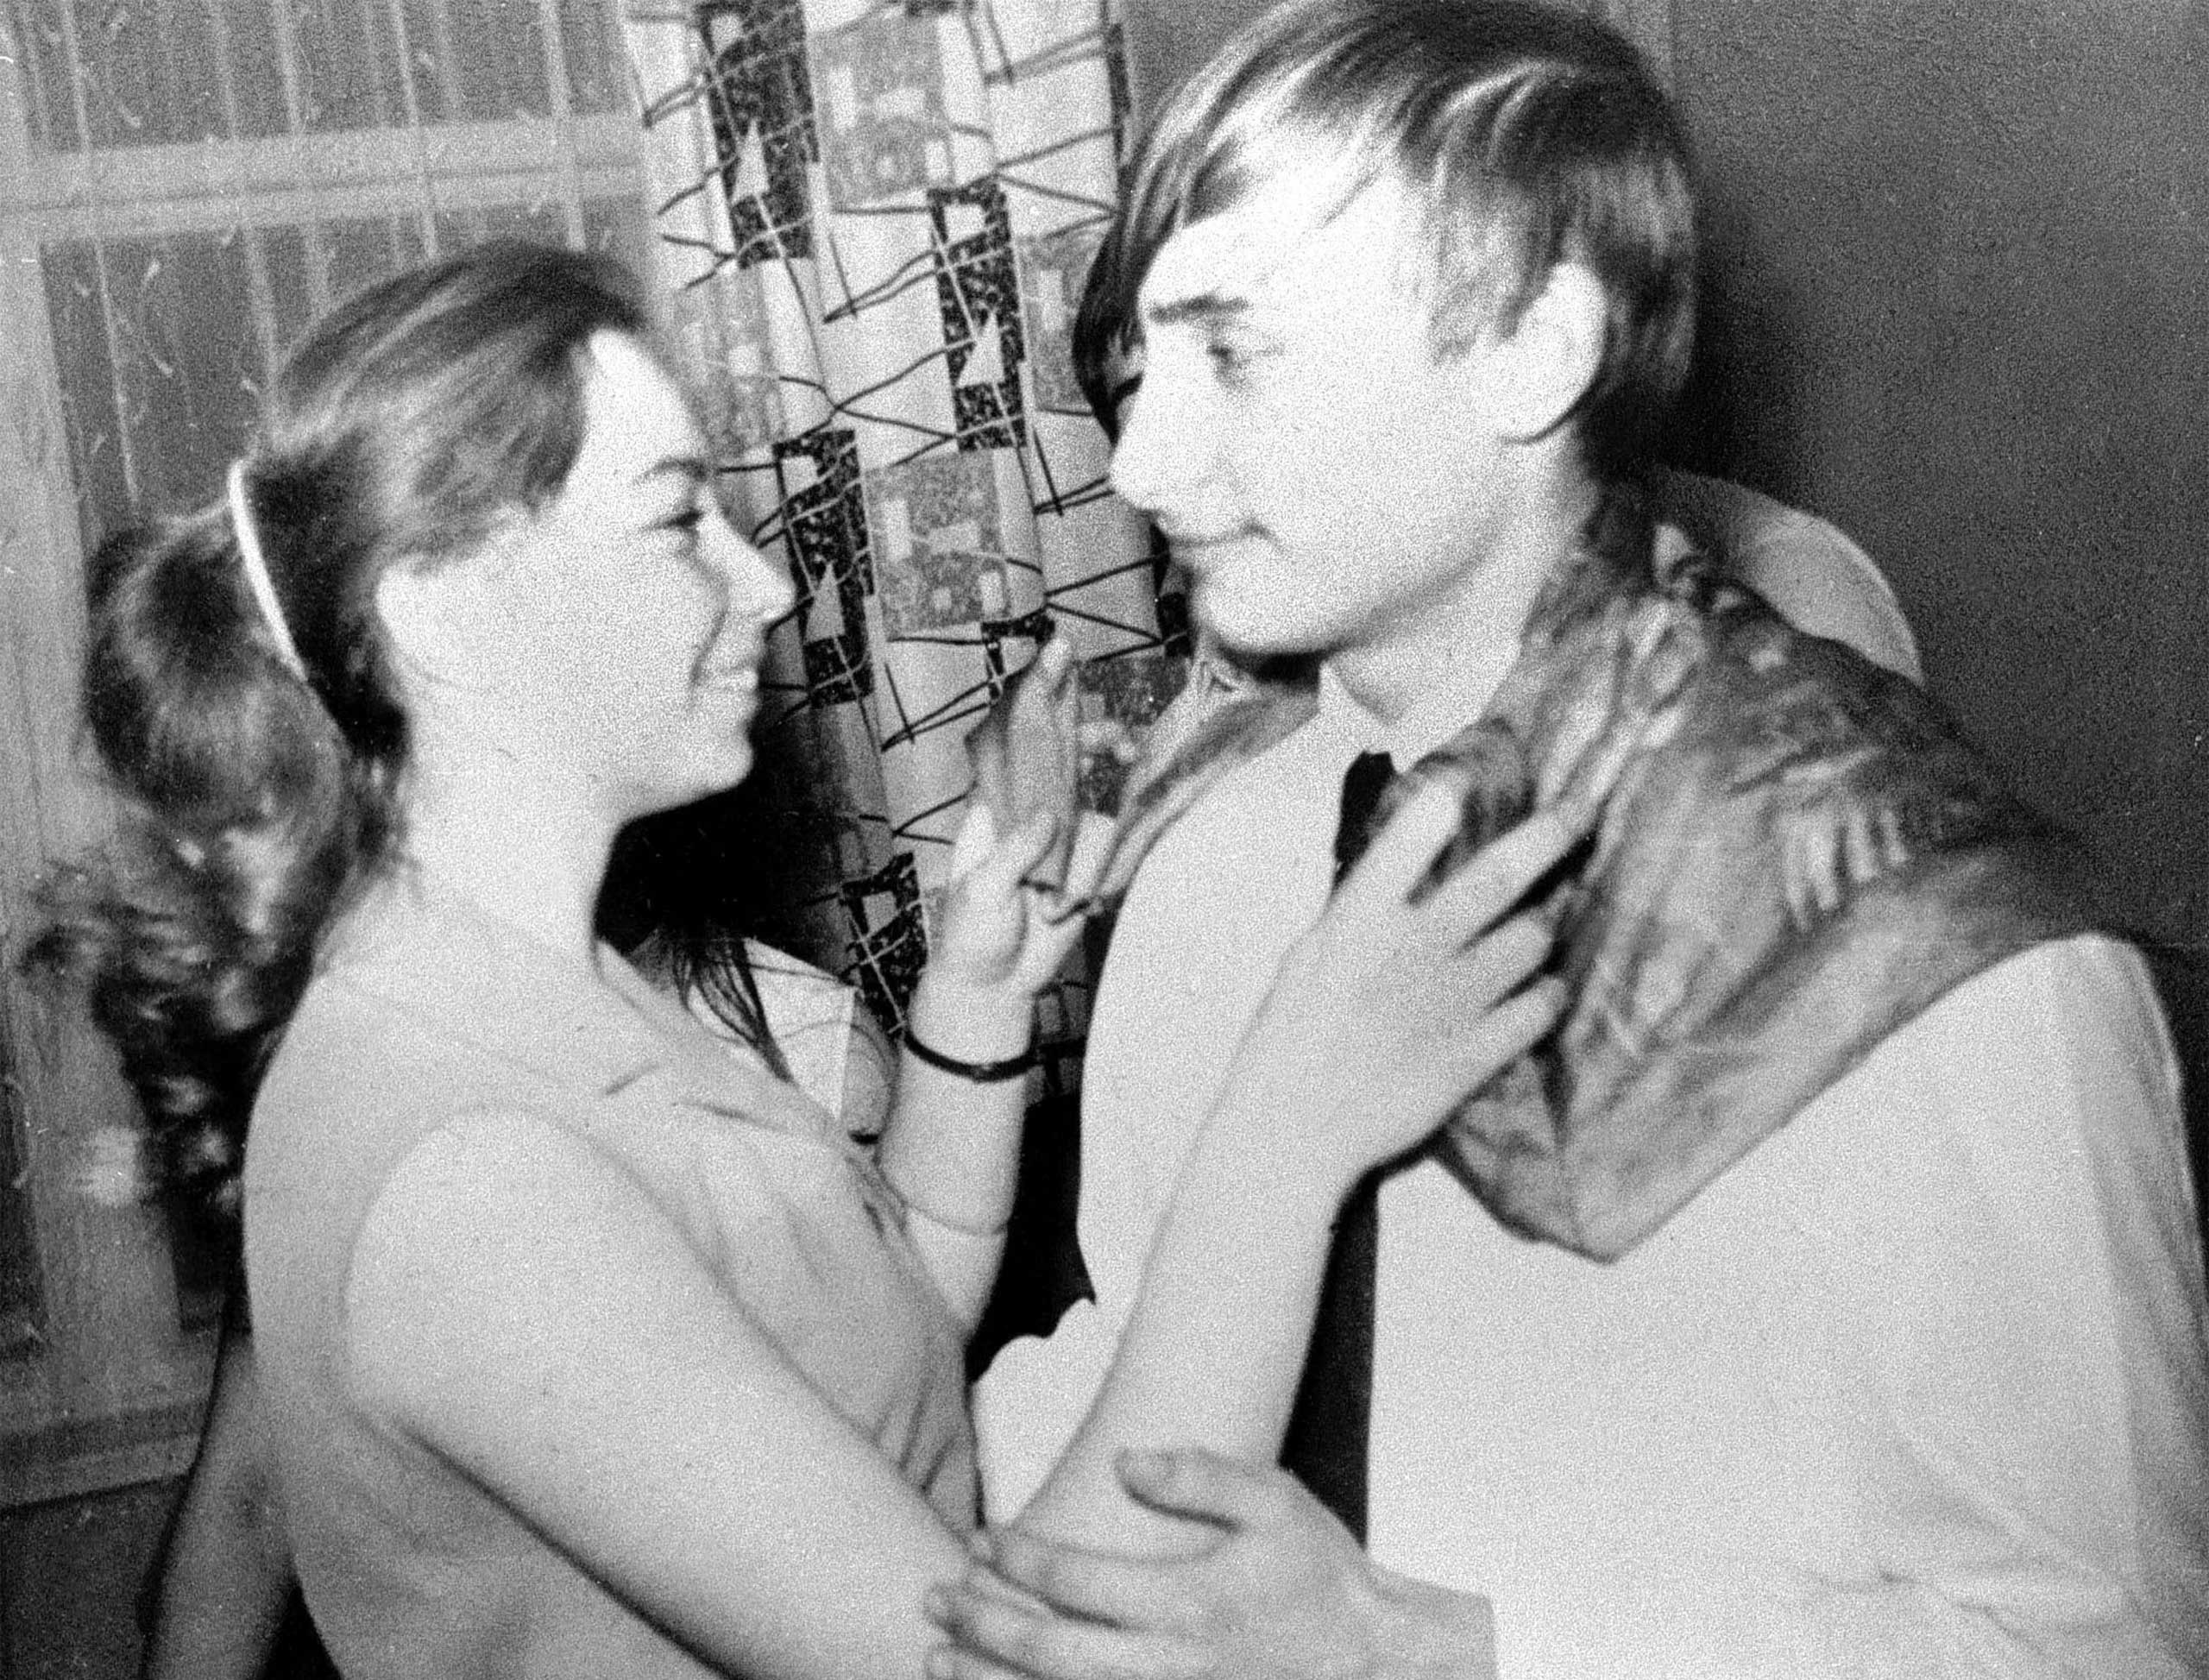 Vladimir Putin dances with his classmate, Elena, during a party in St. Petersburg, then called Leningrad, in 1970.